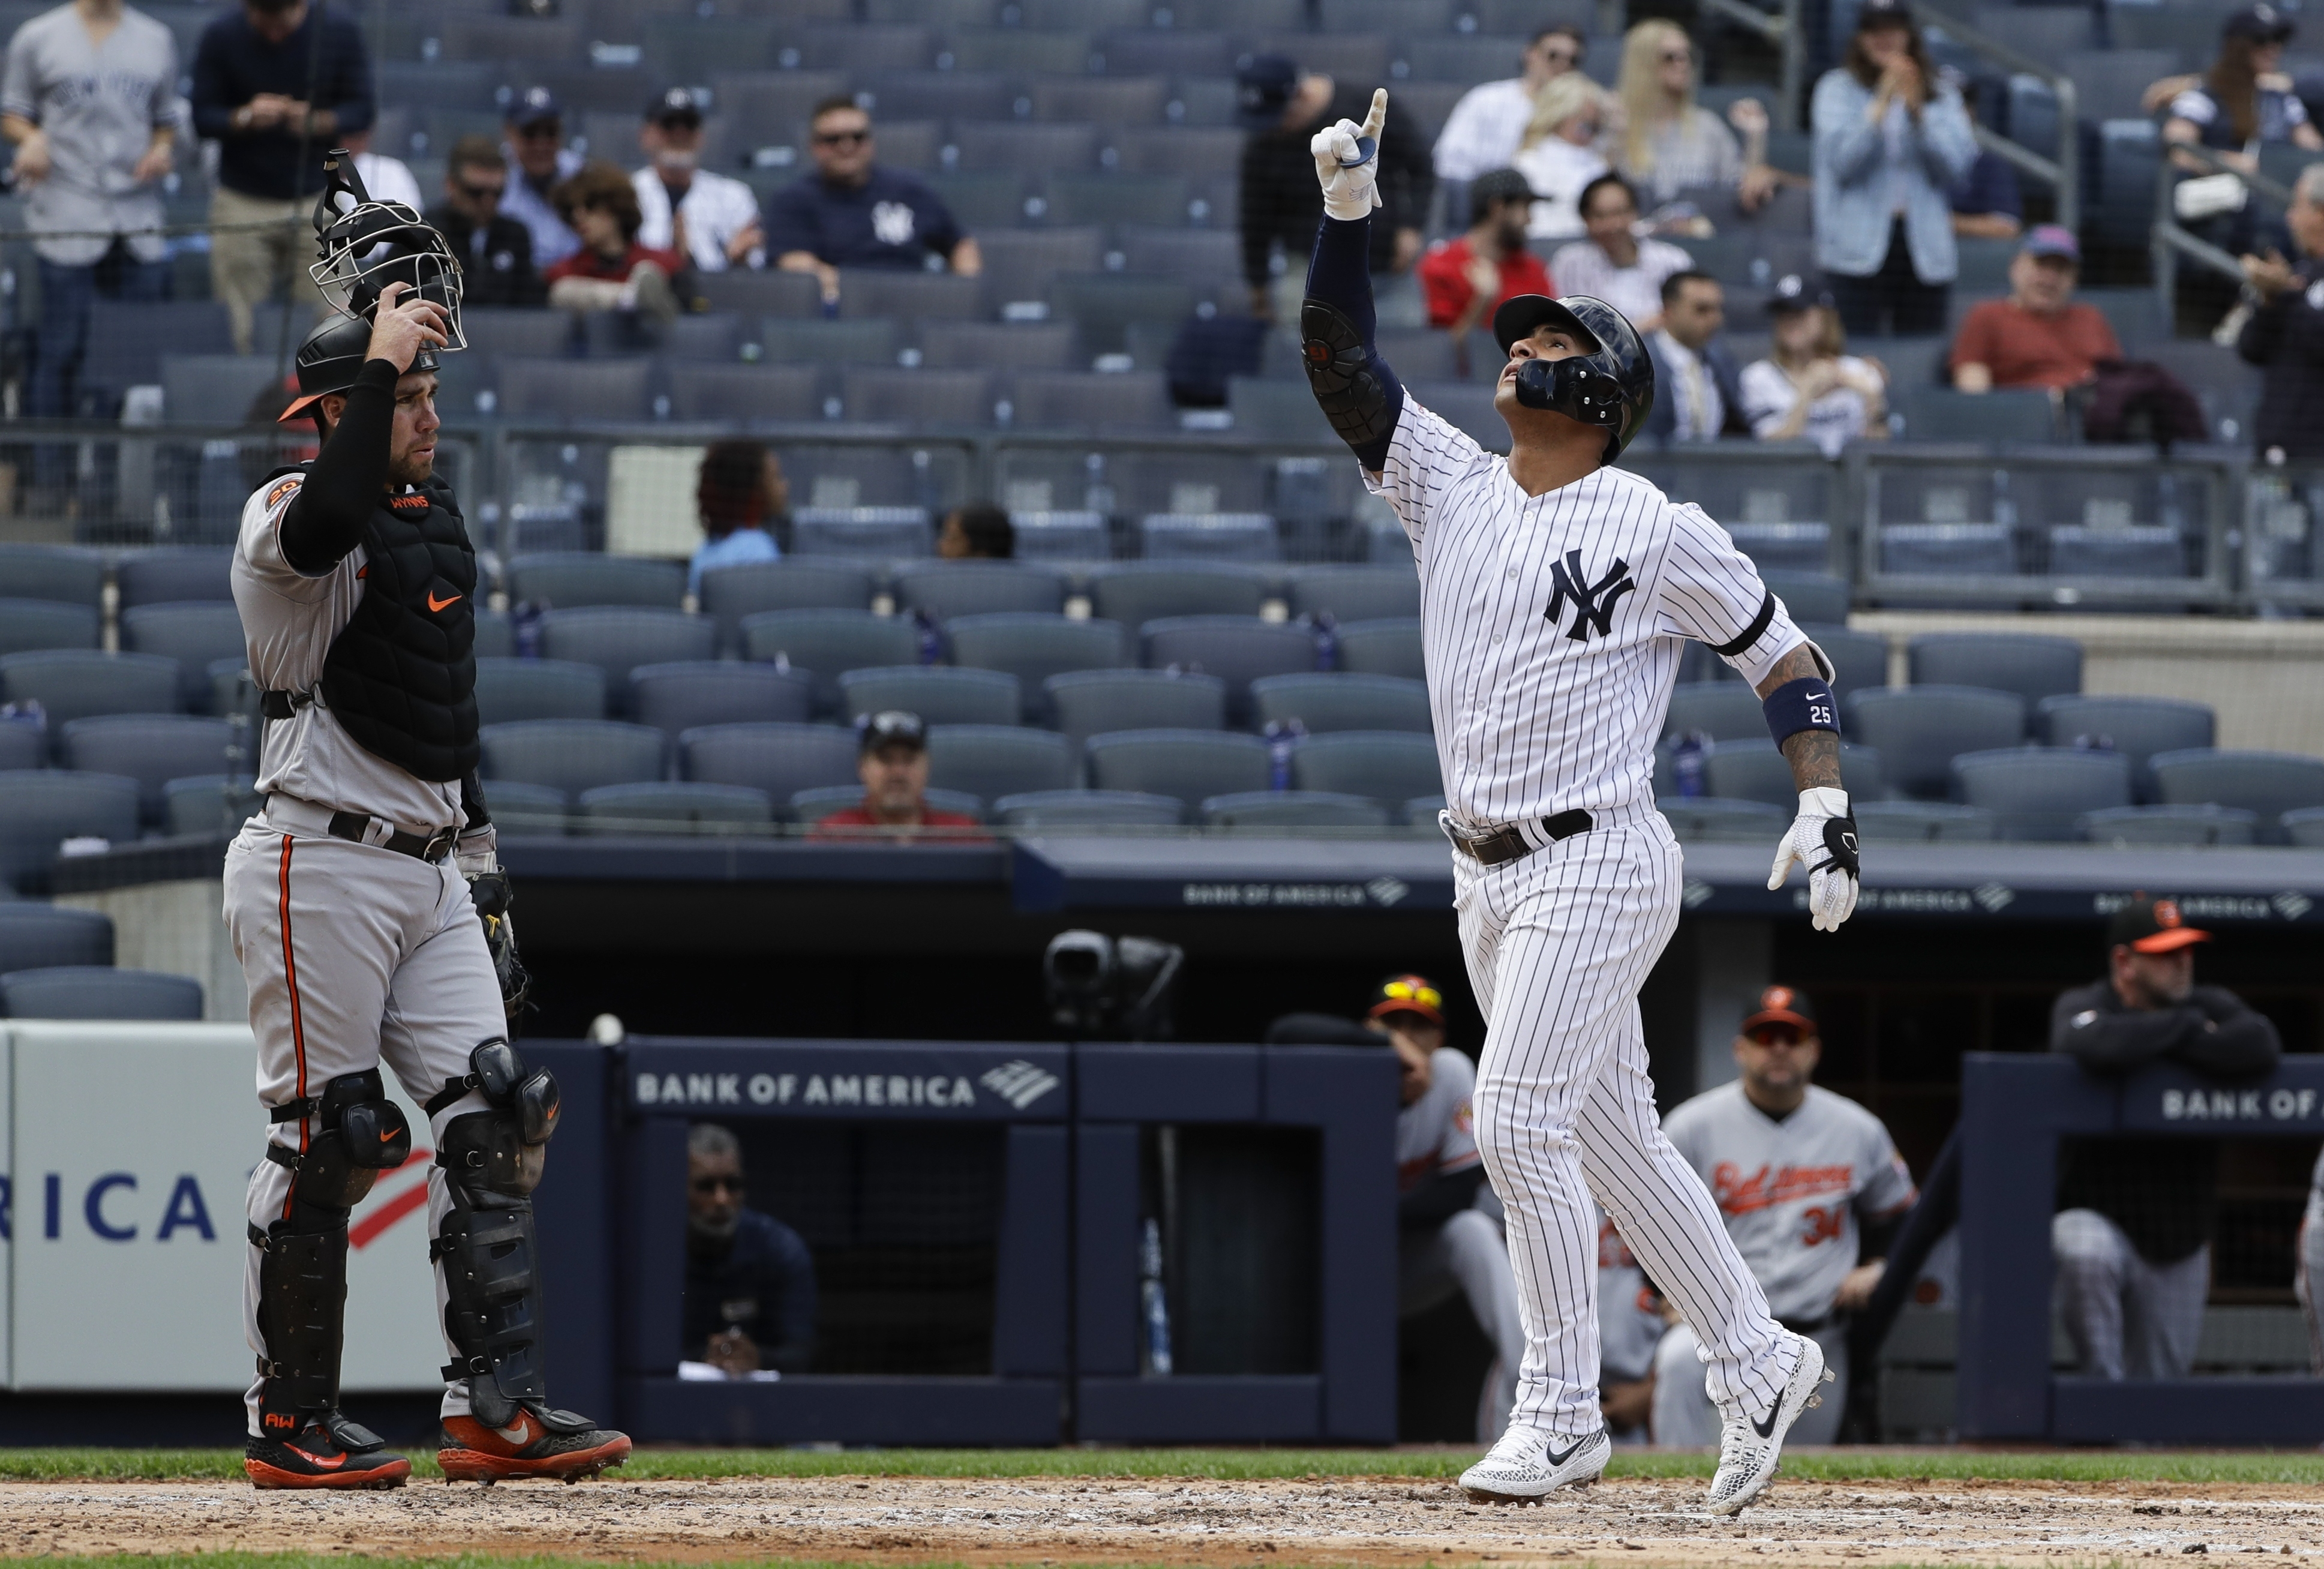 Torres hits 2 of Yanks' 4 HRs, NY tops O's 5-3 to open DH